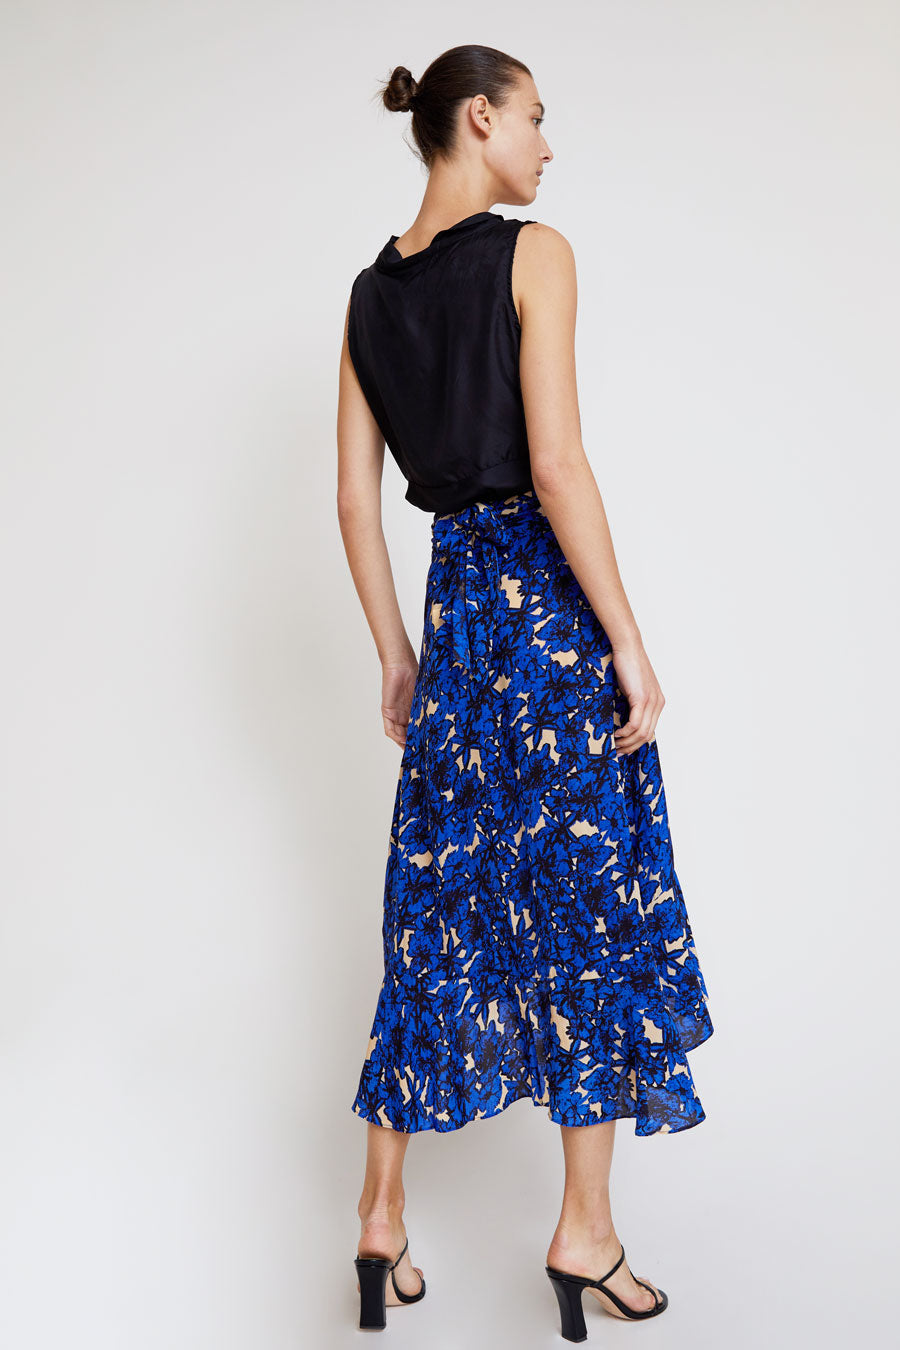 Rodebjer Malika Flower Skirt in Intense Blue